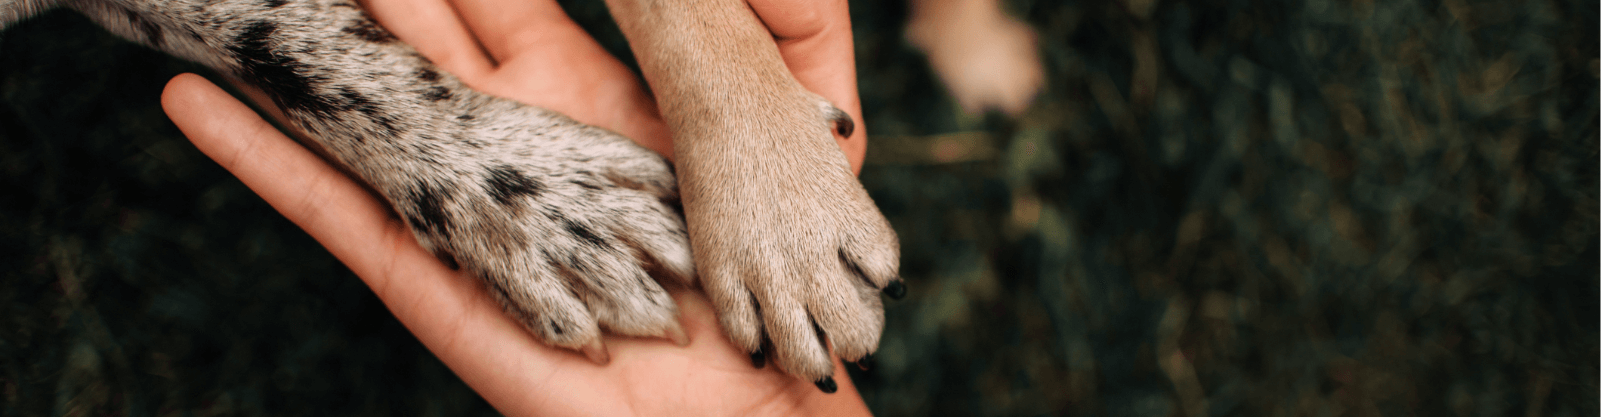 Paws placed in the palm of a person's hand